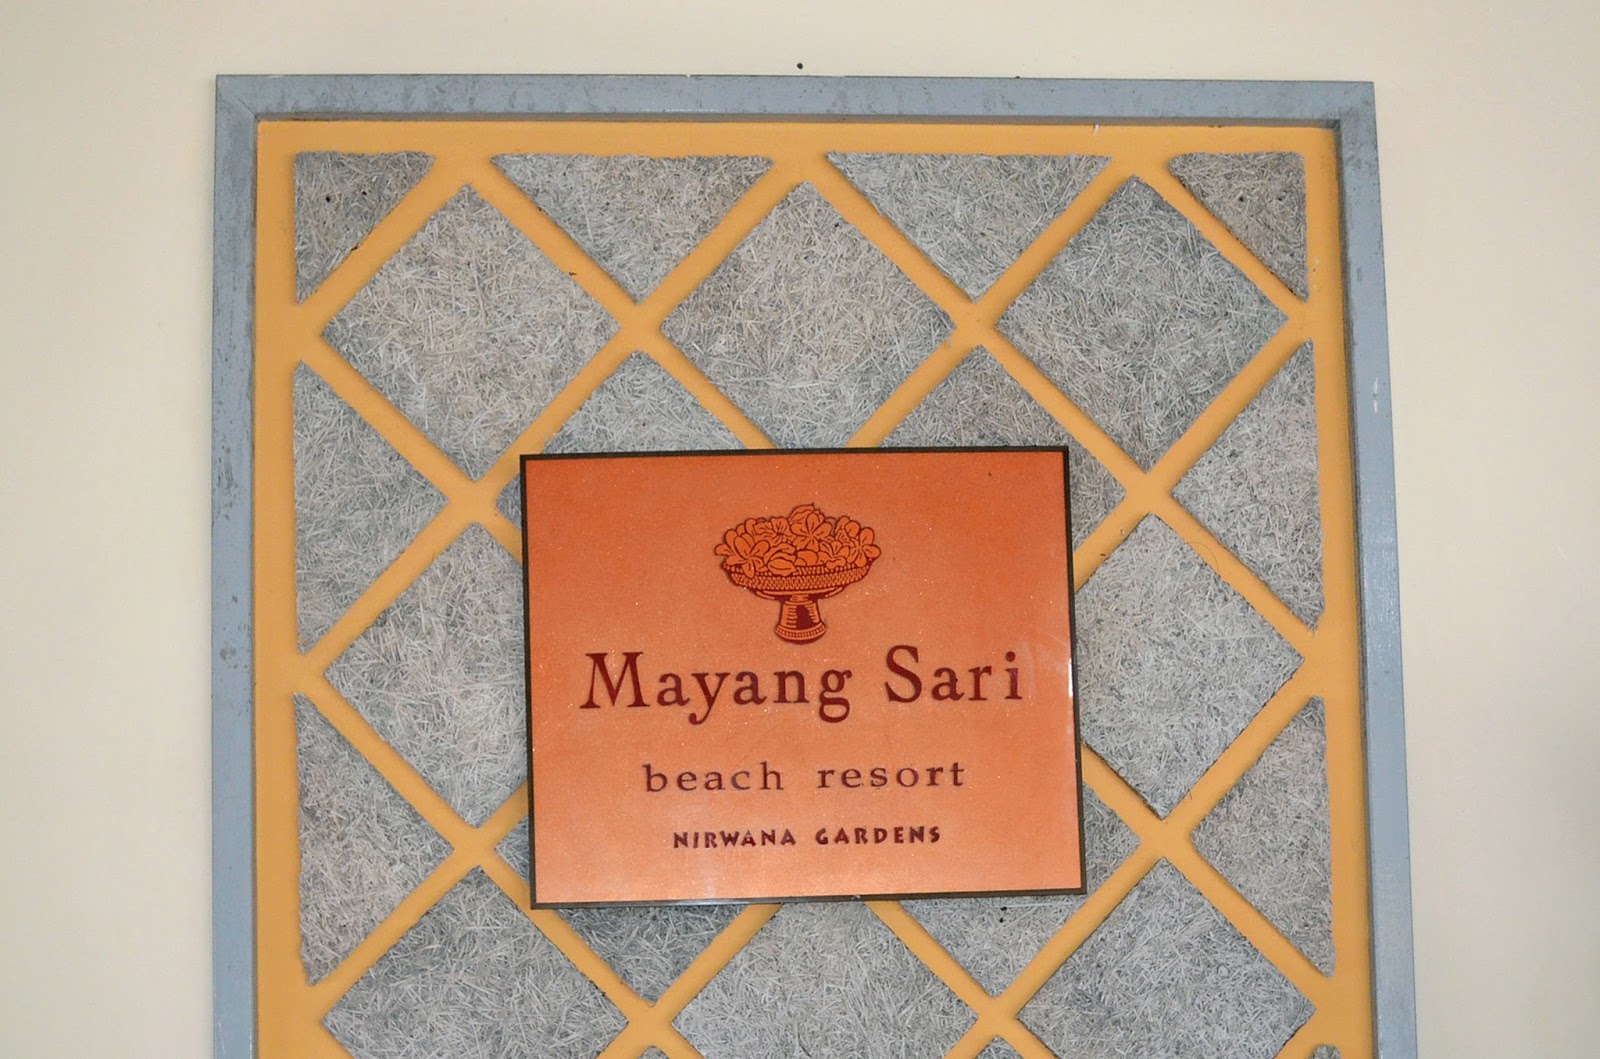 At Mayang Sari Beach Resort, guests are offered a choice to book either a sea view or garden view chalet. For our stay, we have chosen to stay in a sea view ...